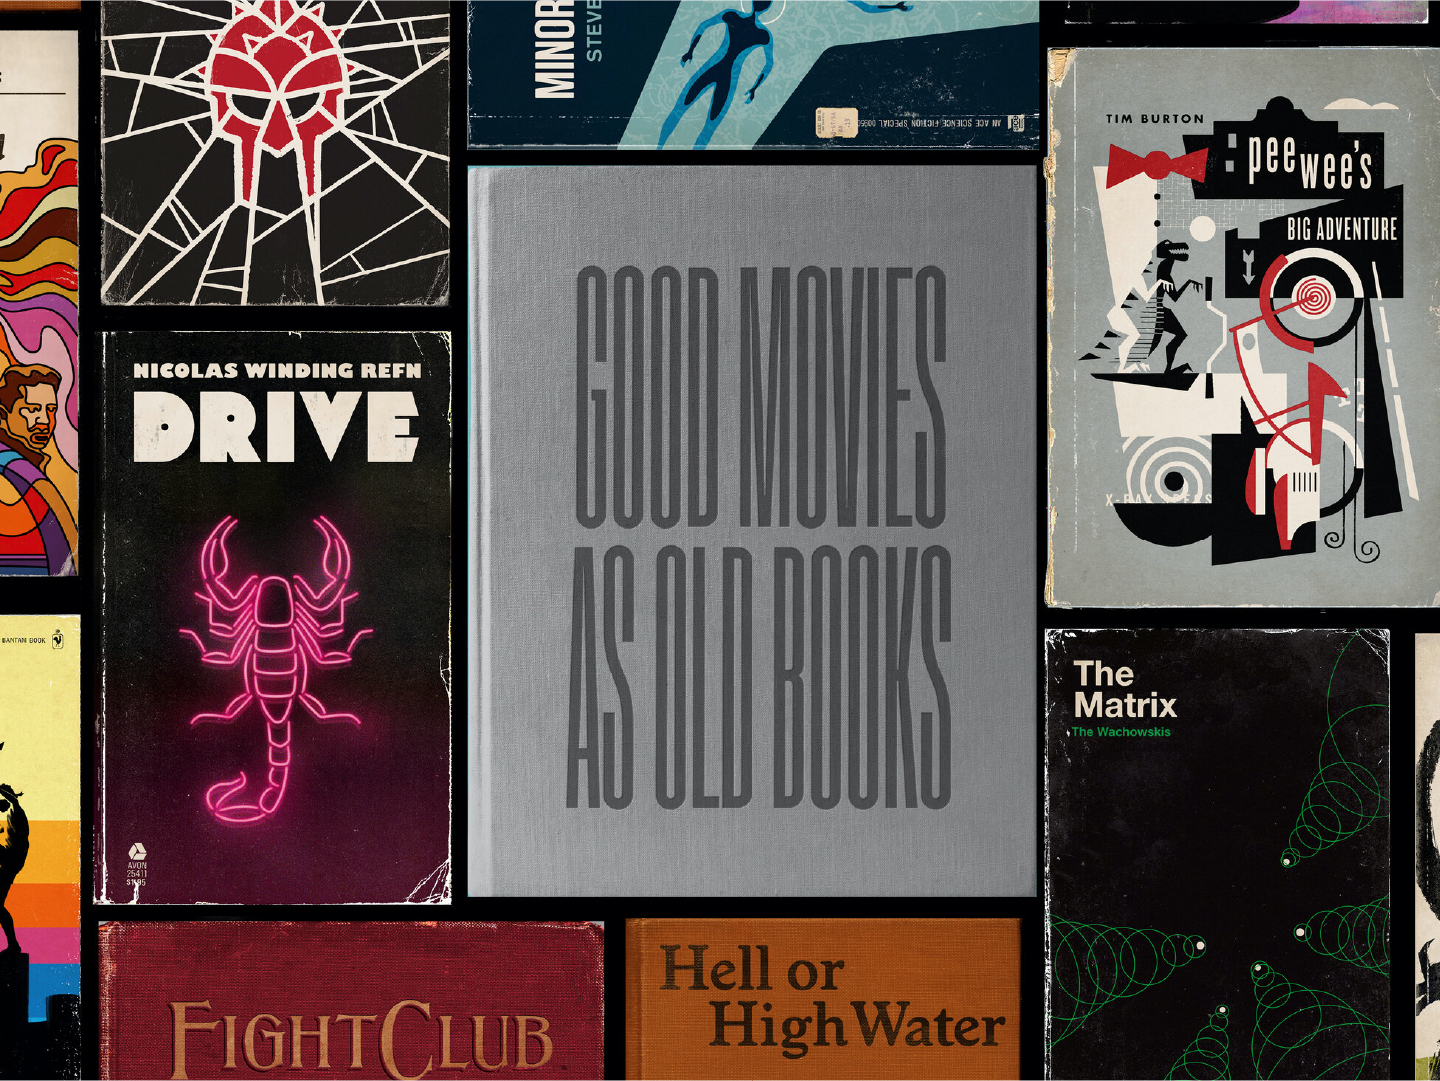 Good movies as old books - Blue Stag Selects May